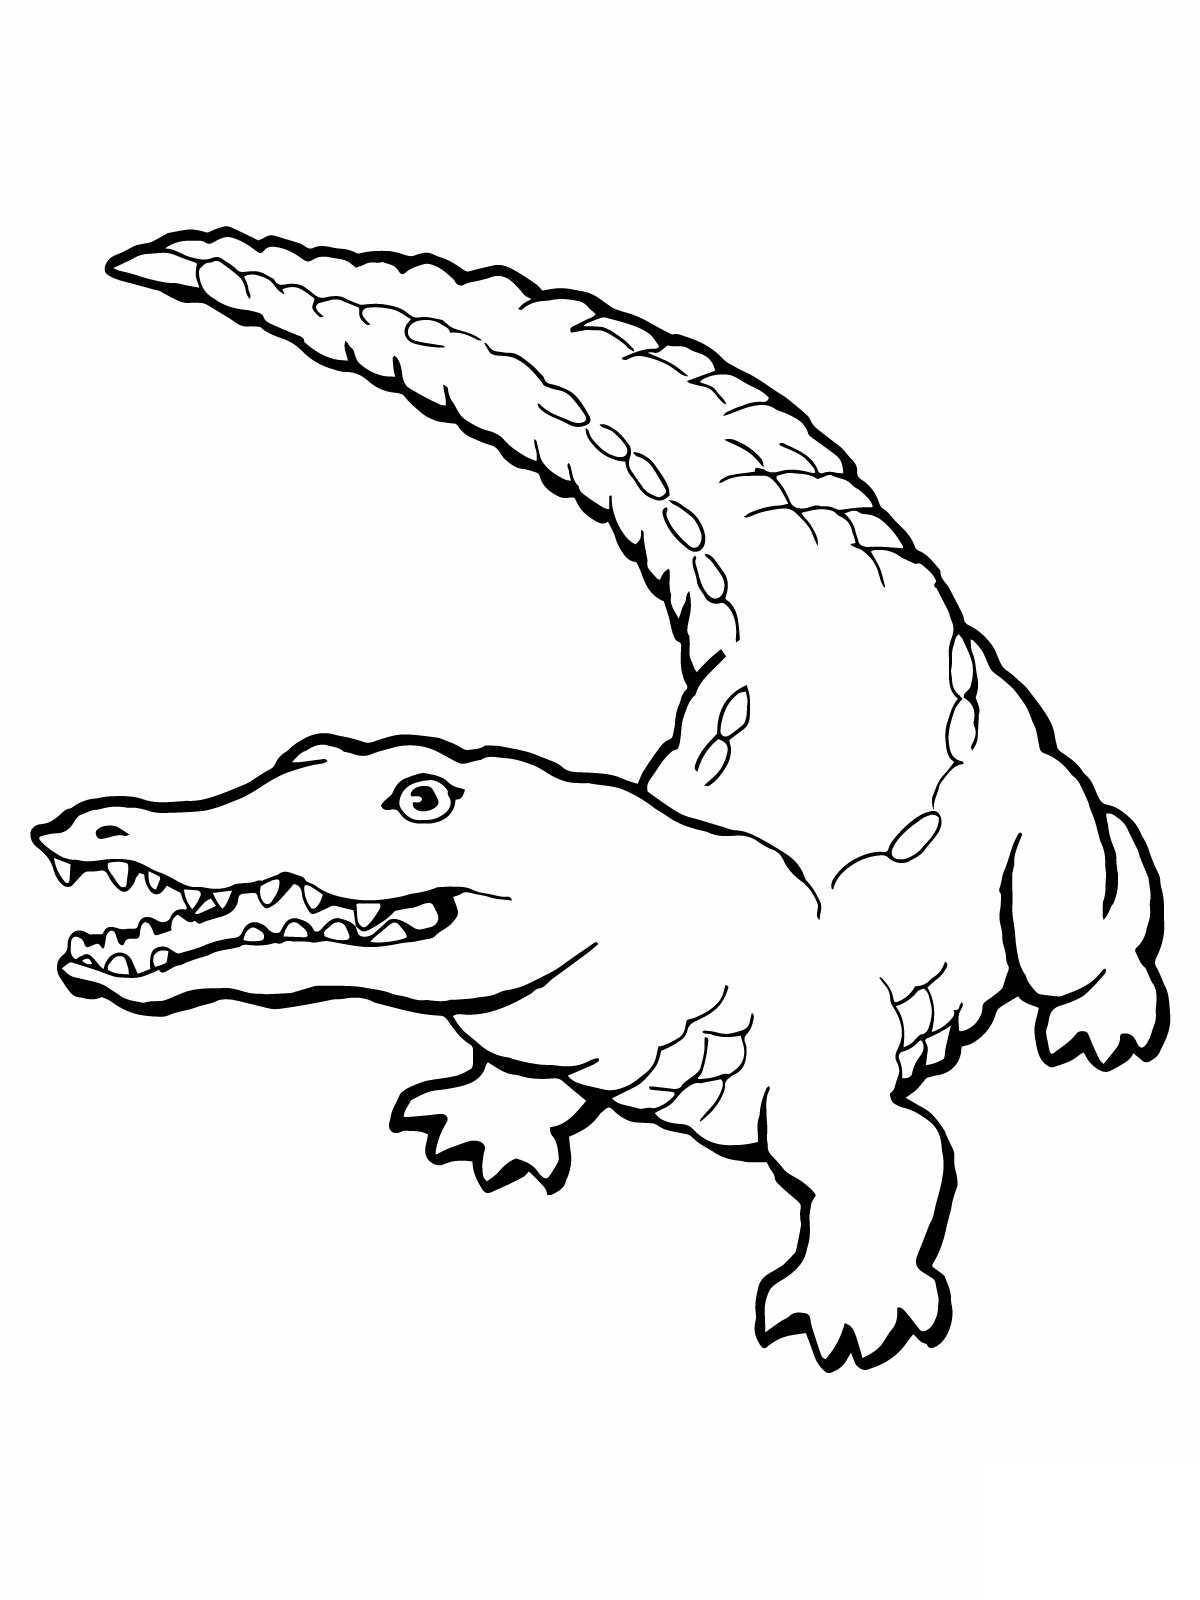 1200x1600 Gator Coloring Pages Baby Alligator Coloring Page Ebestbuyvn.co